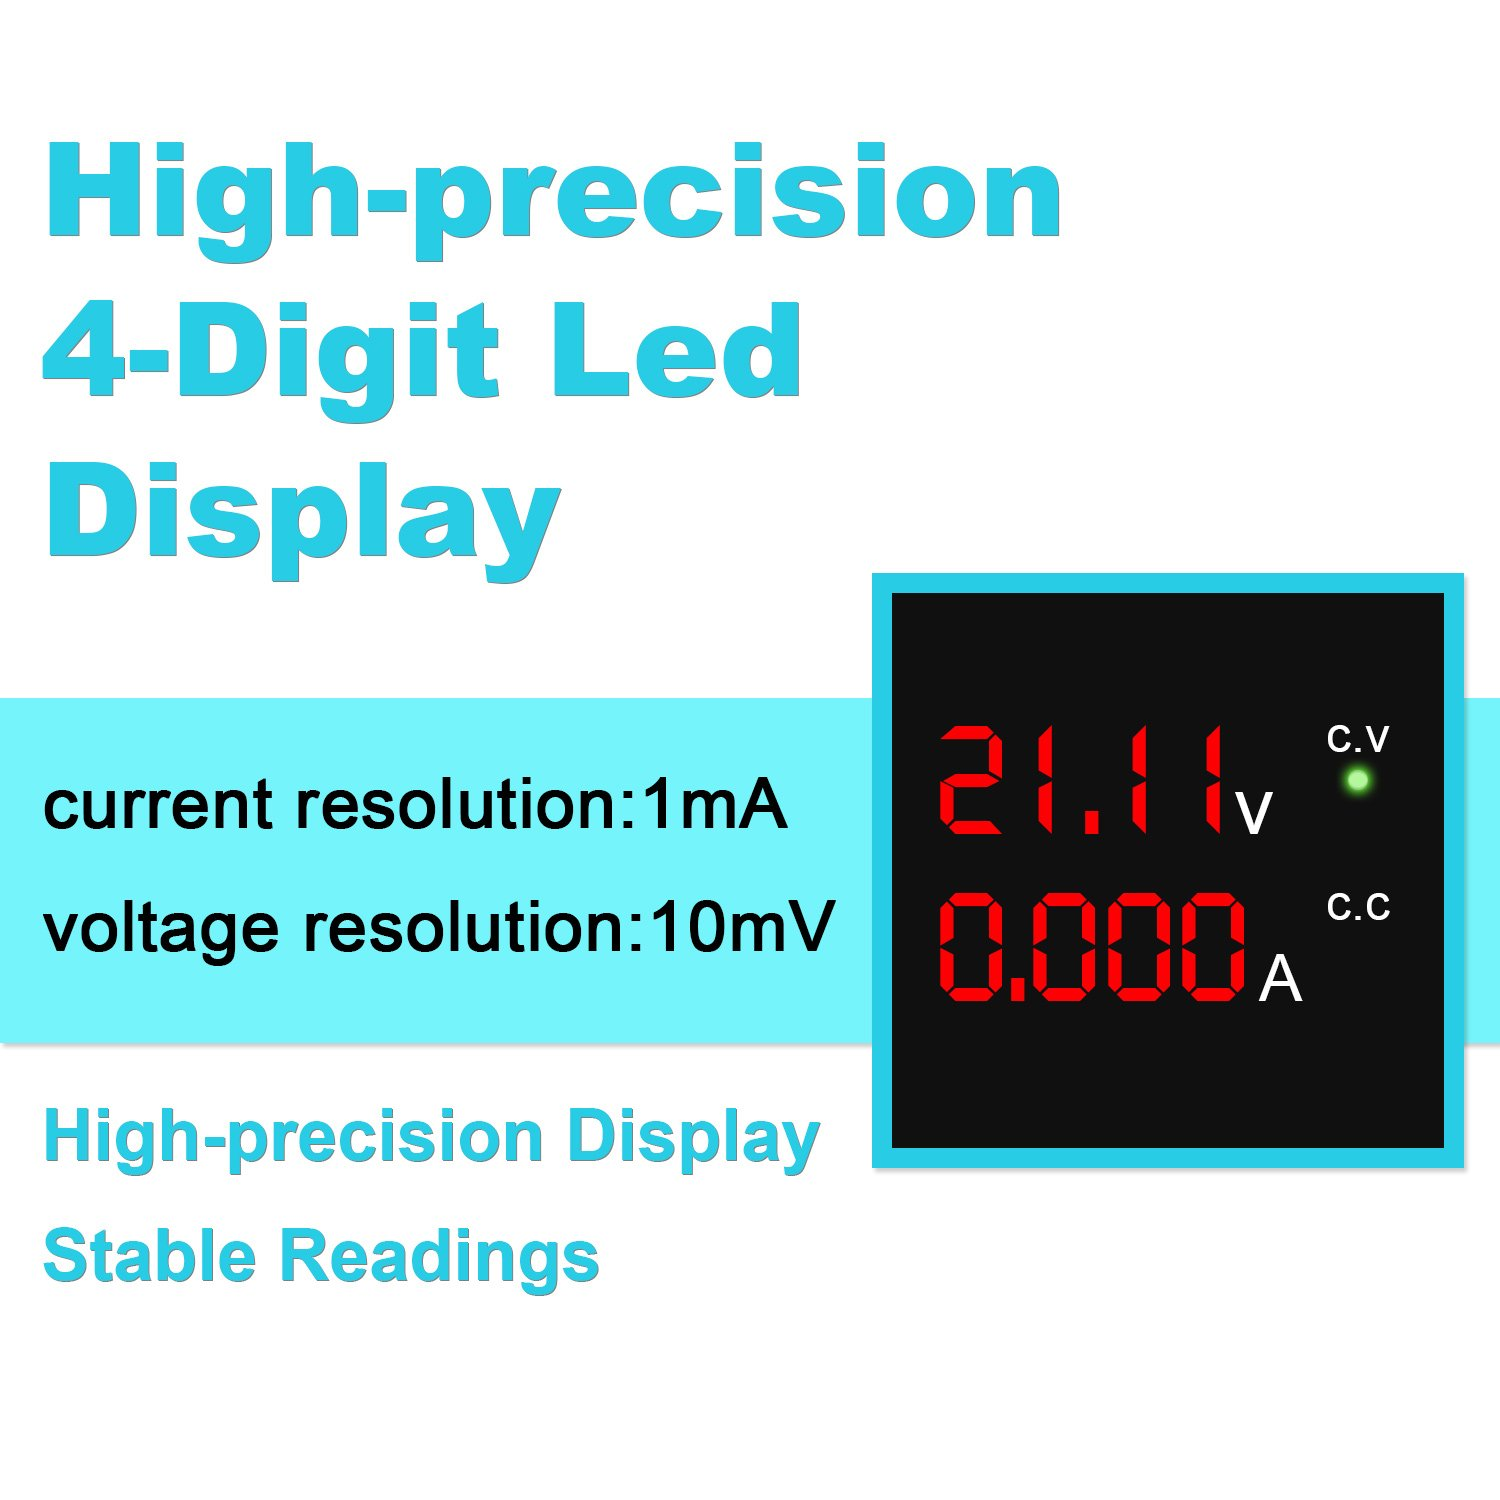 Dc Power Supply Variable 30v 10a 4 Digit Led Display Upgraded 0 30v0 2a Adjustable Voltage And Current Regulator Version Precision Bench Regulated With 2